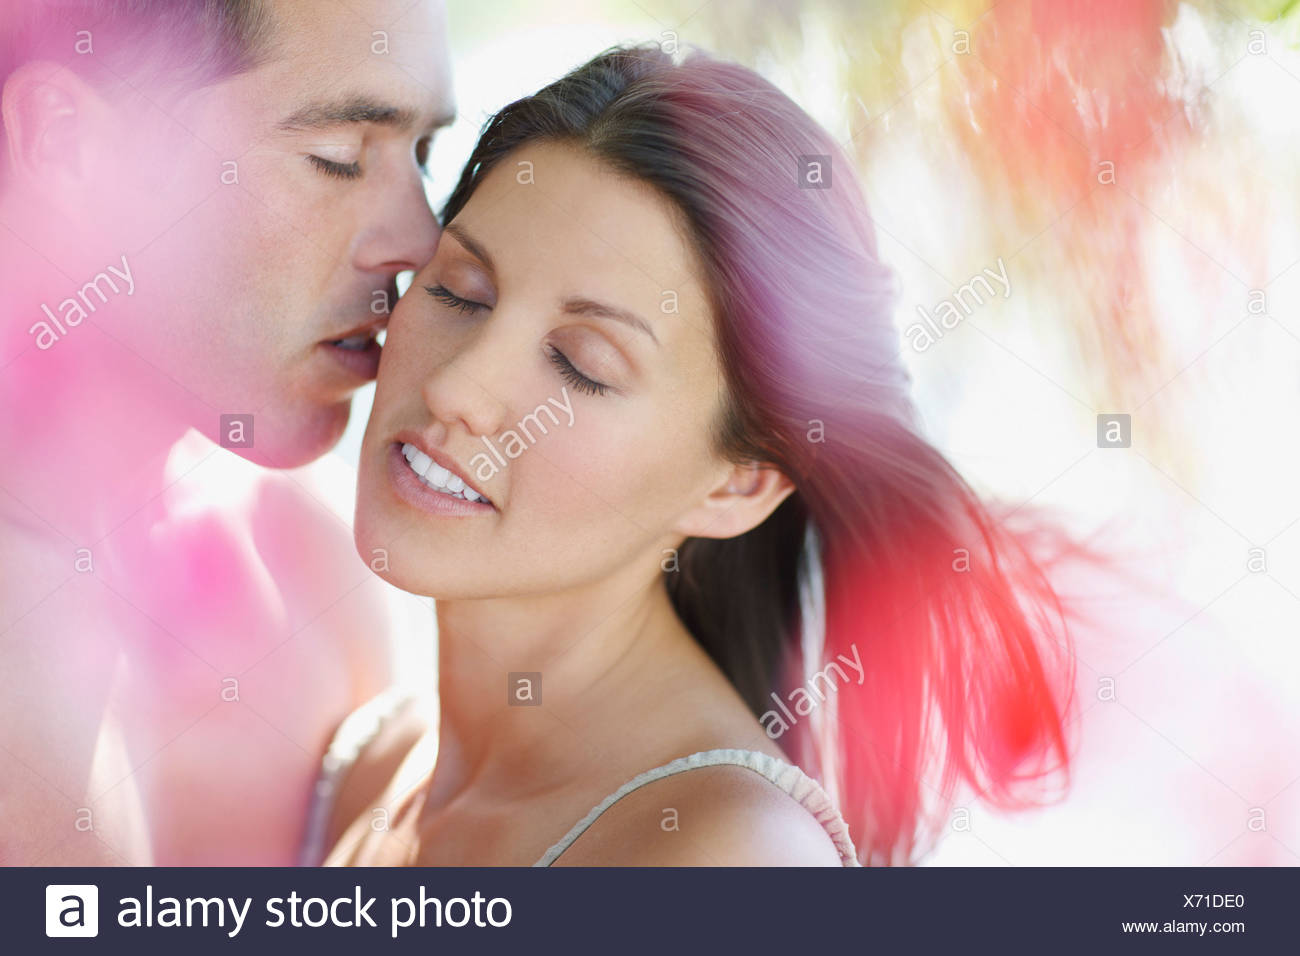 Husband kissing wife - Stock Image